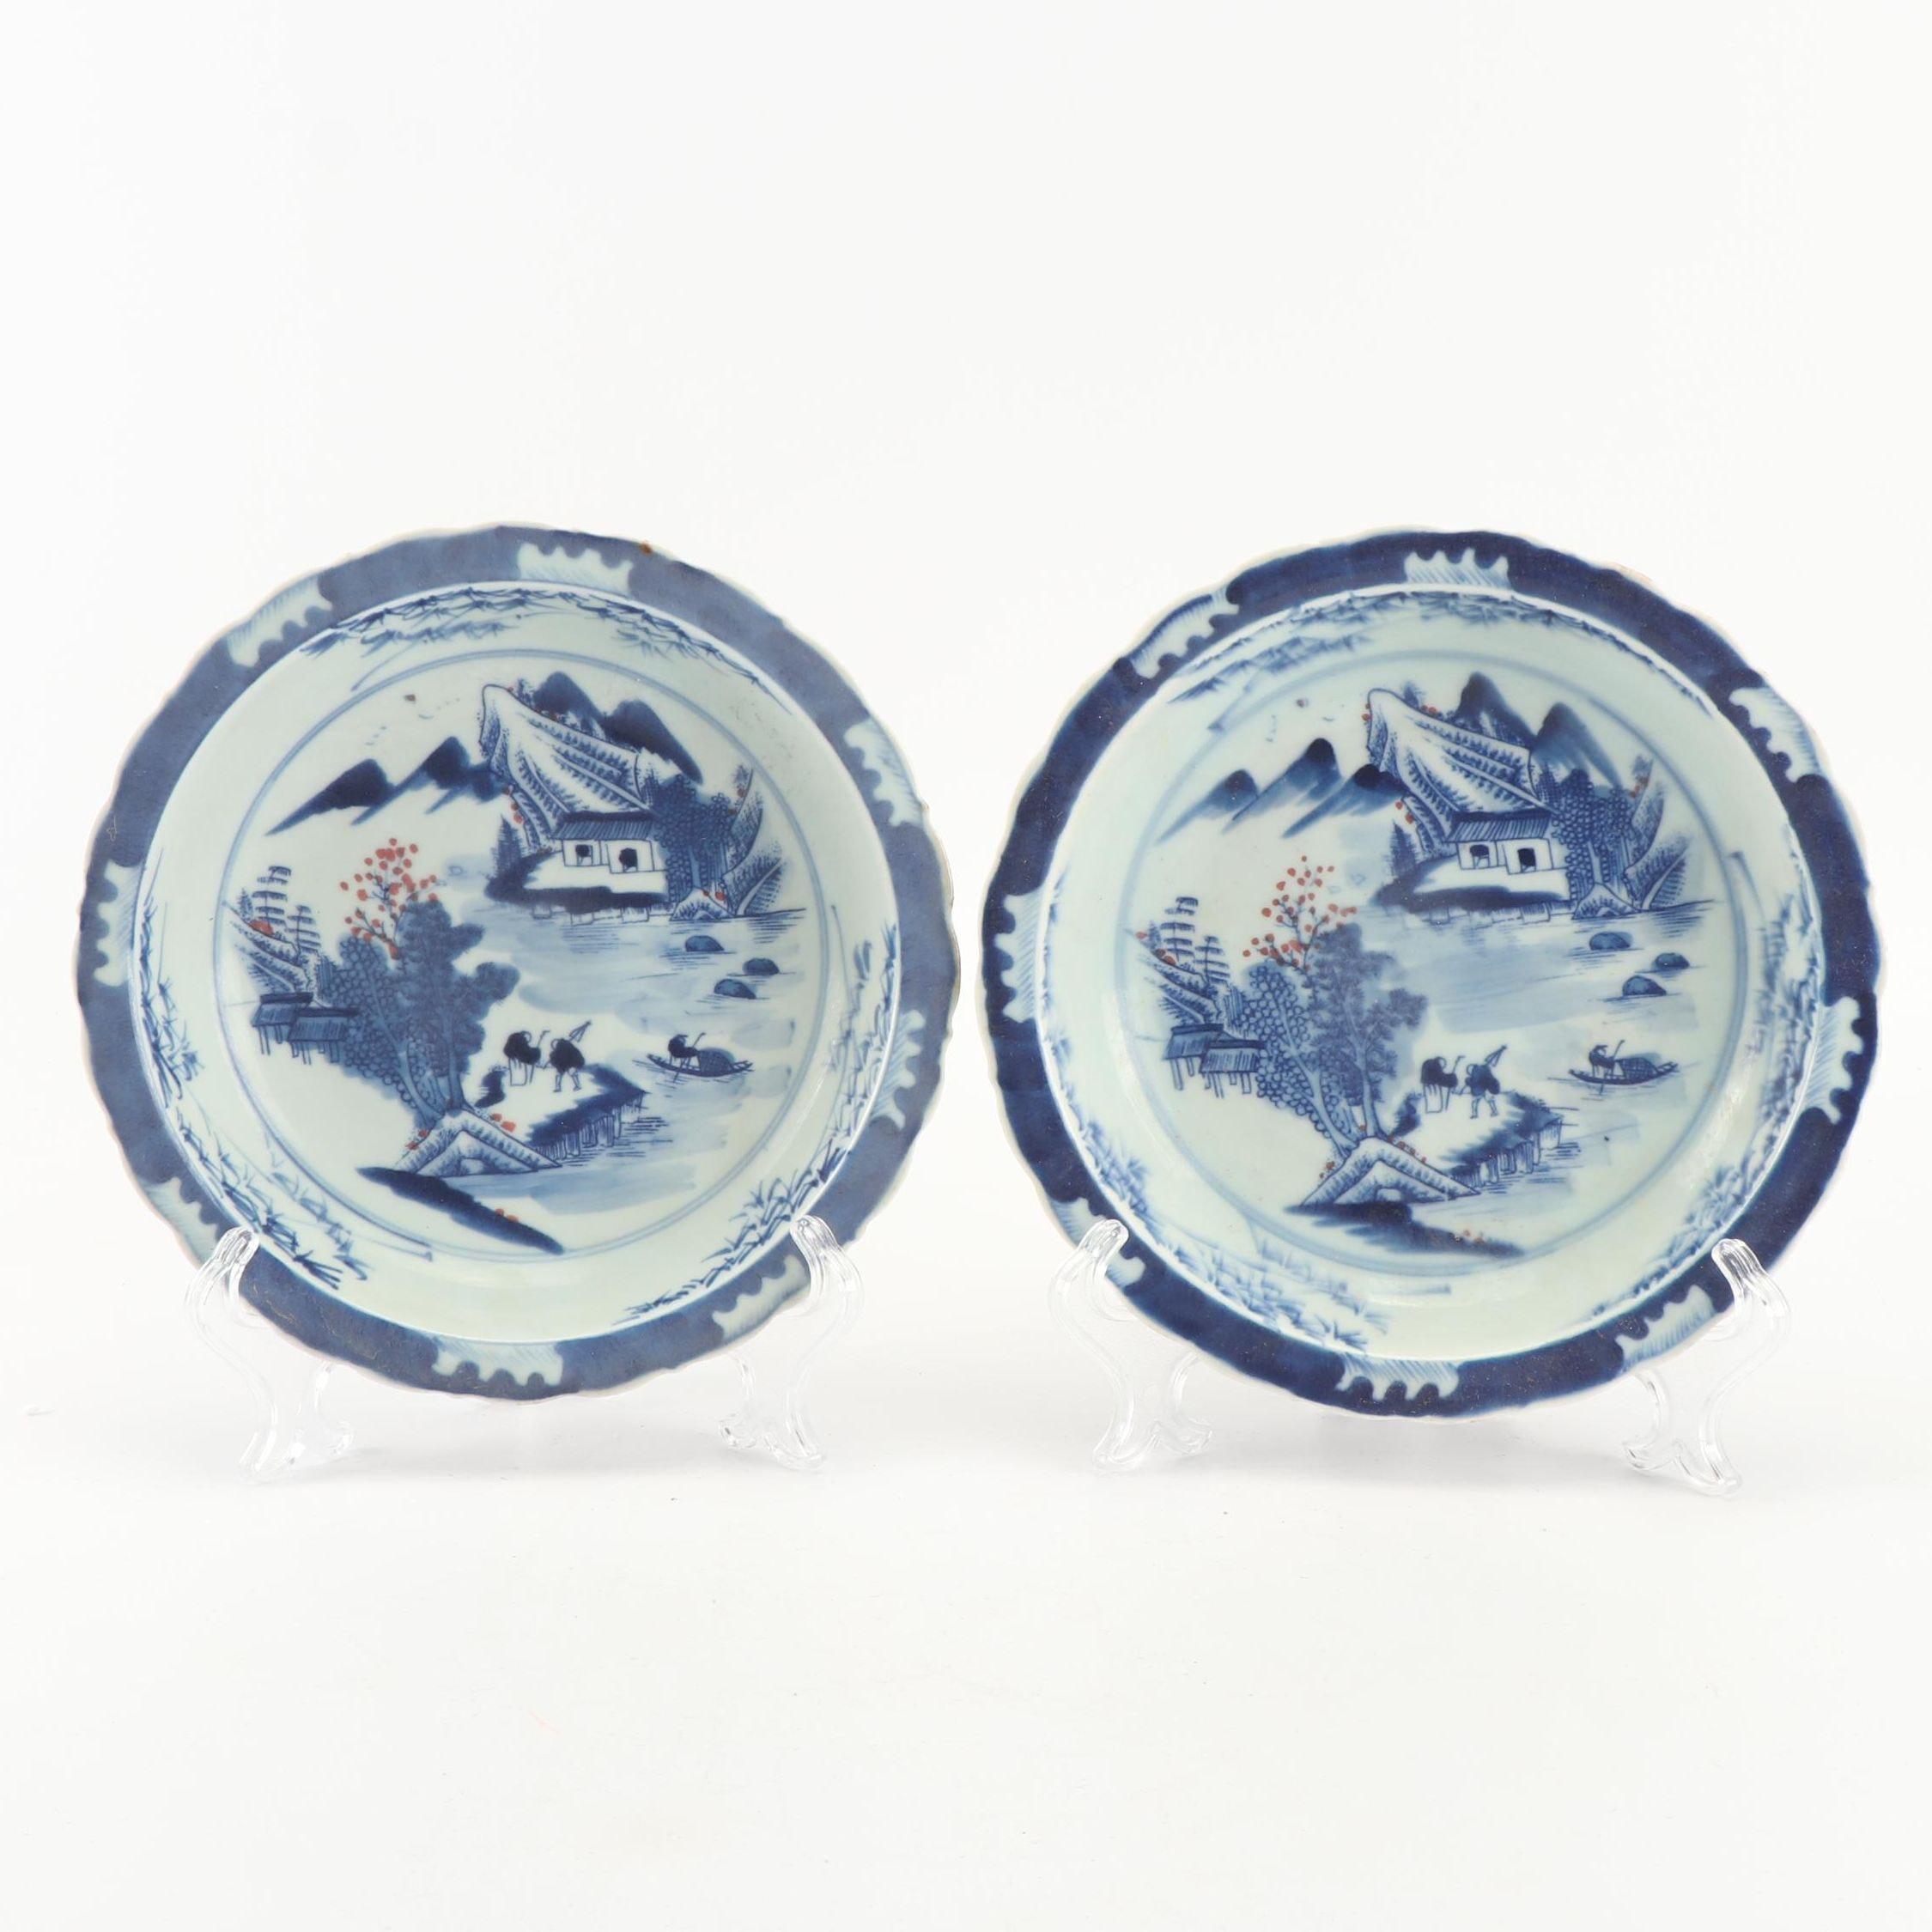 Chinese Blue and White Porcelain Bowls